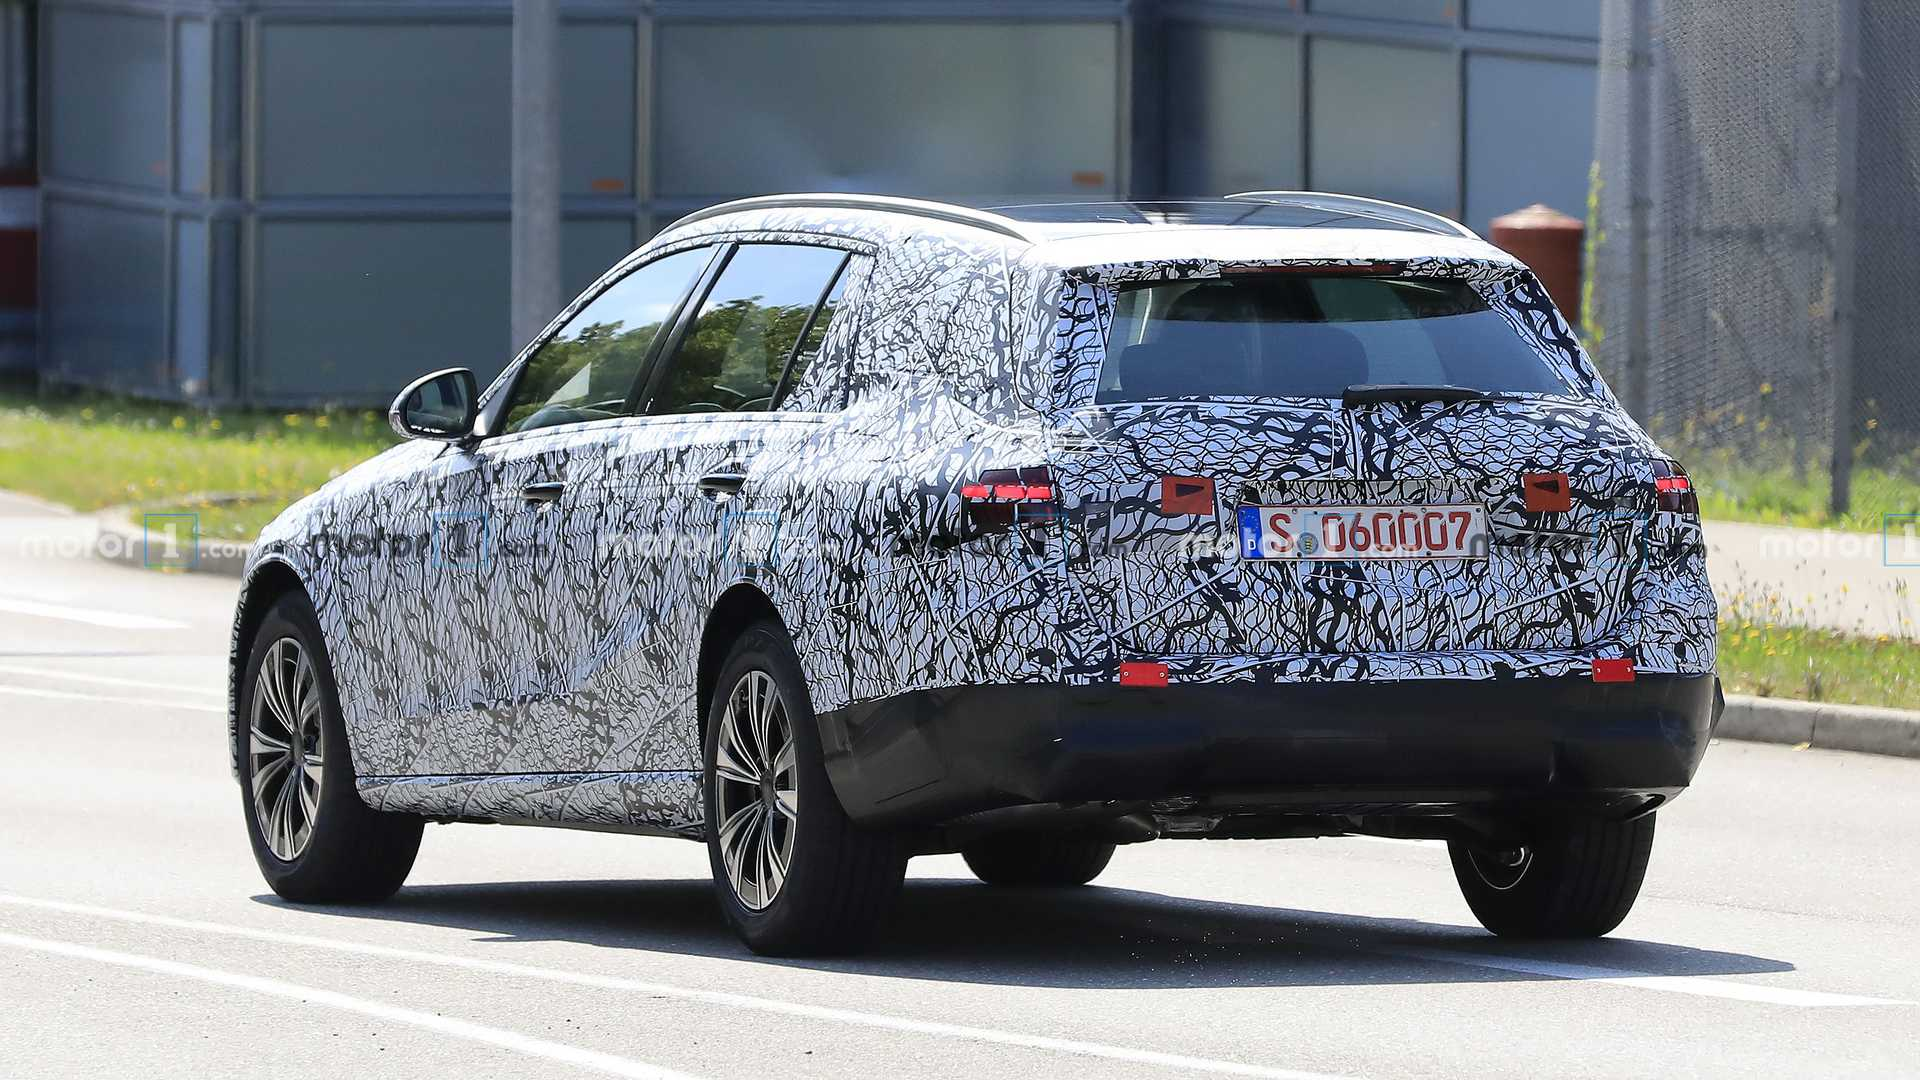 2021-mercedes-c-class-estate-spy-photo-r